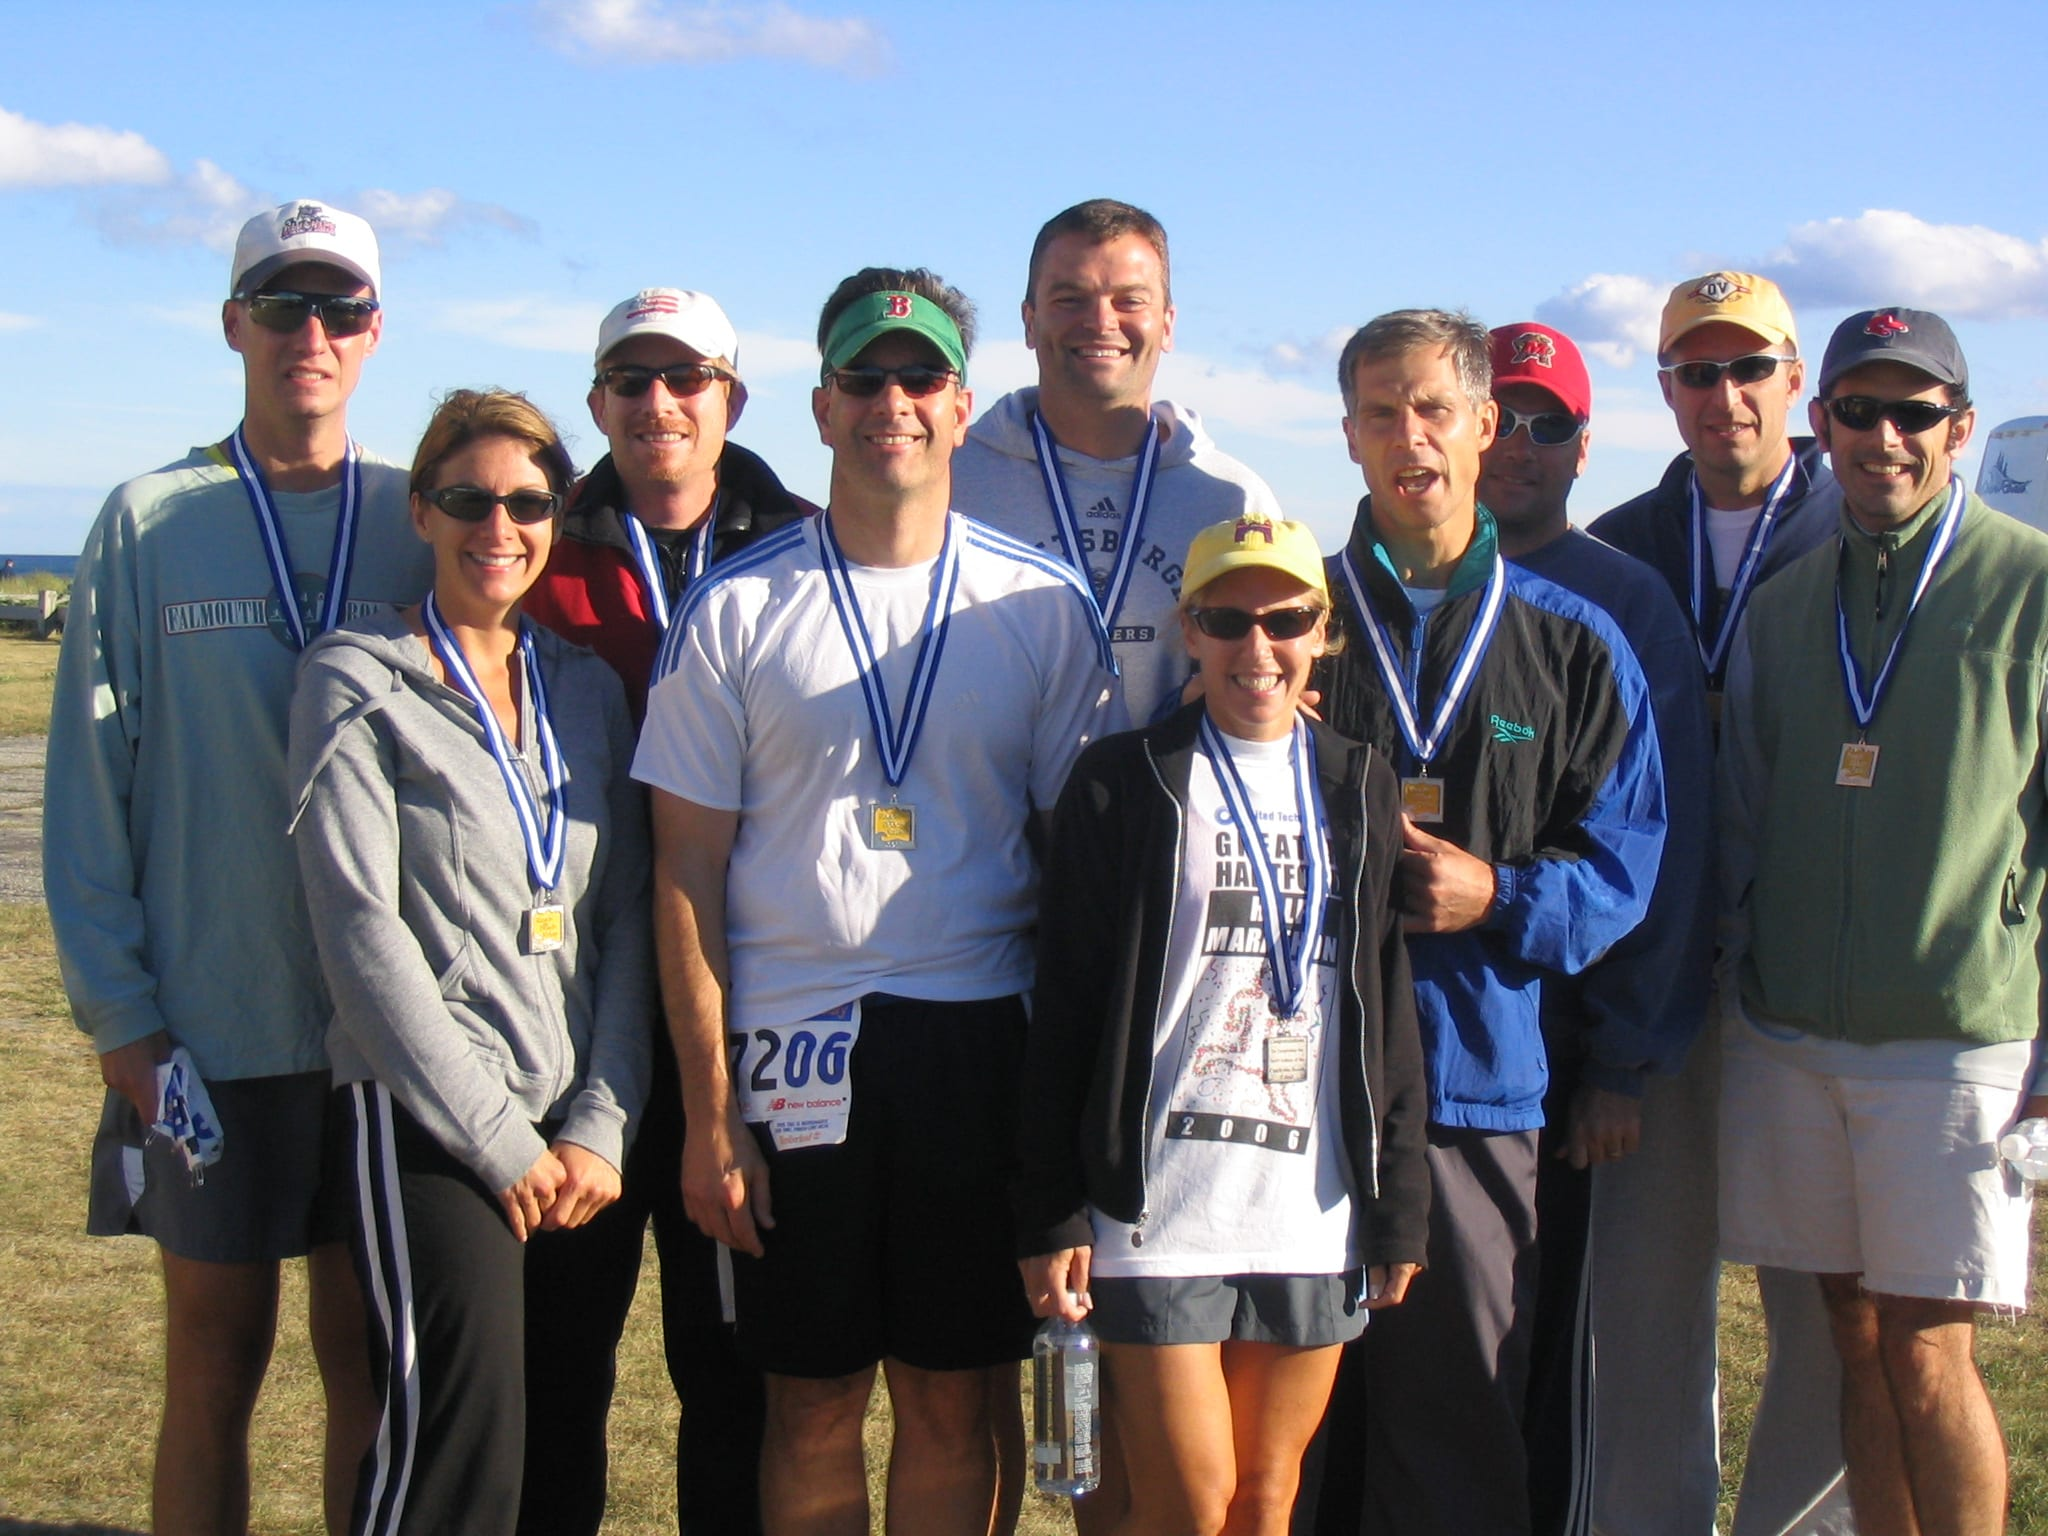 Original Reach the Beach Old School team from September 2007. Lucio is second from right. Ronni Newton photo